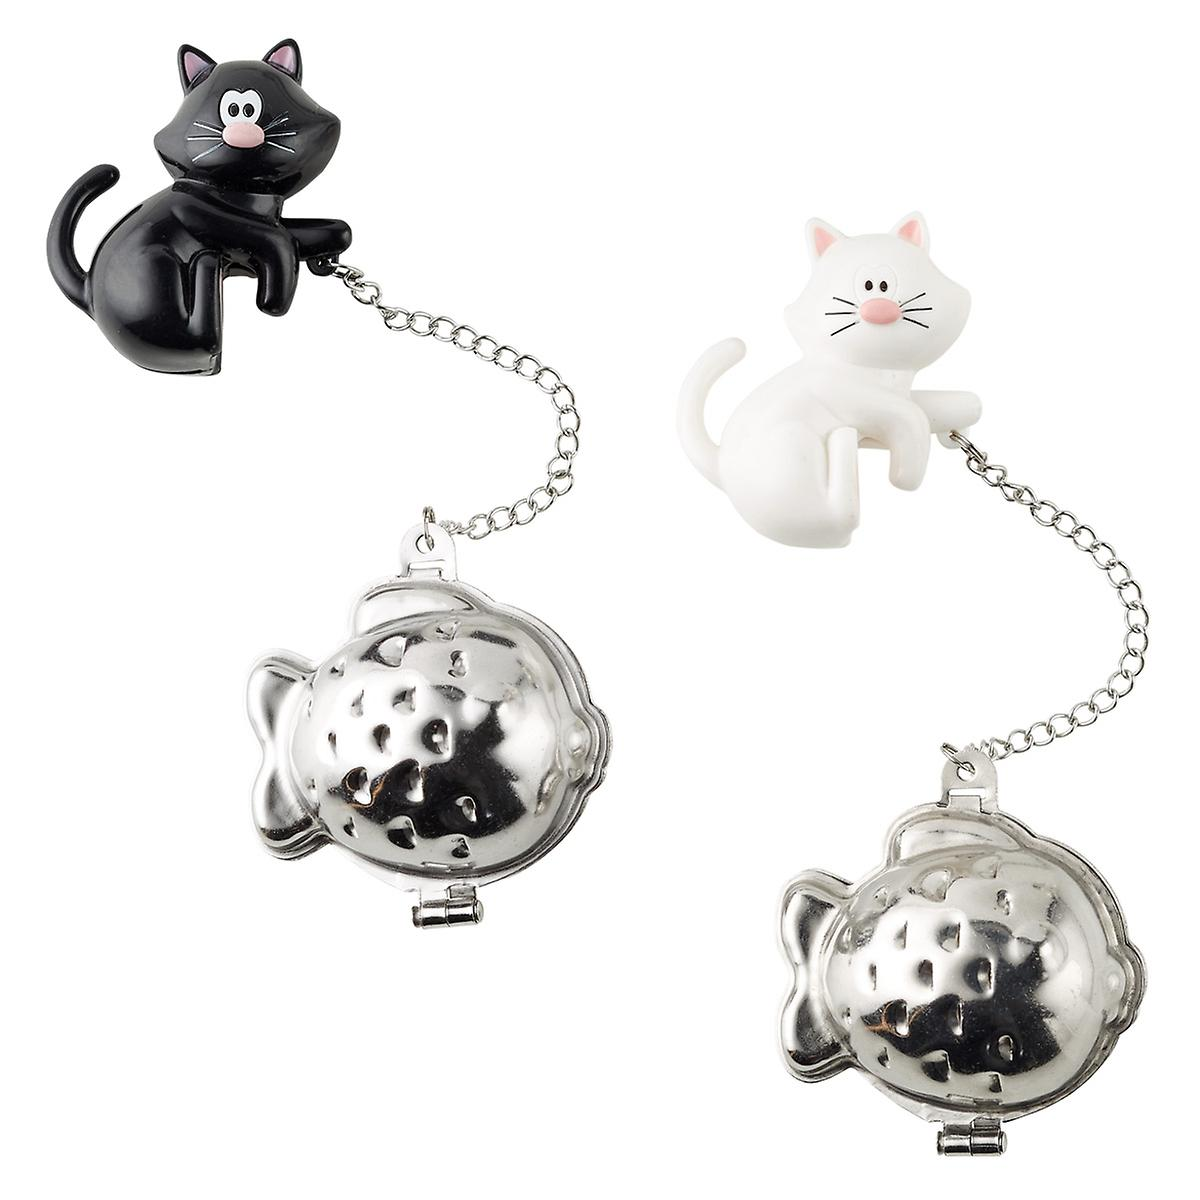 Joie Meow Cat Loose Tea Leaf Infuser